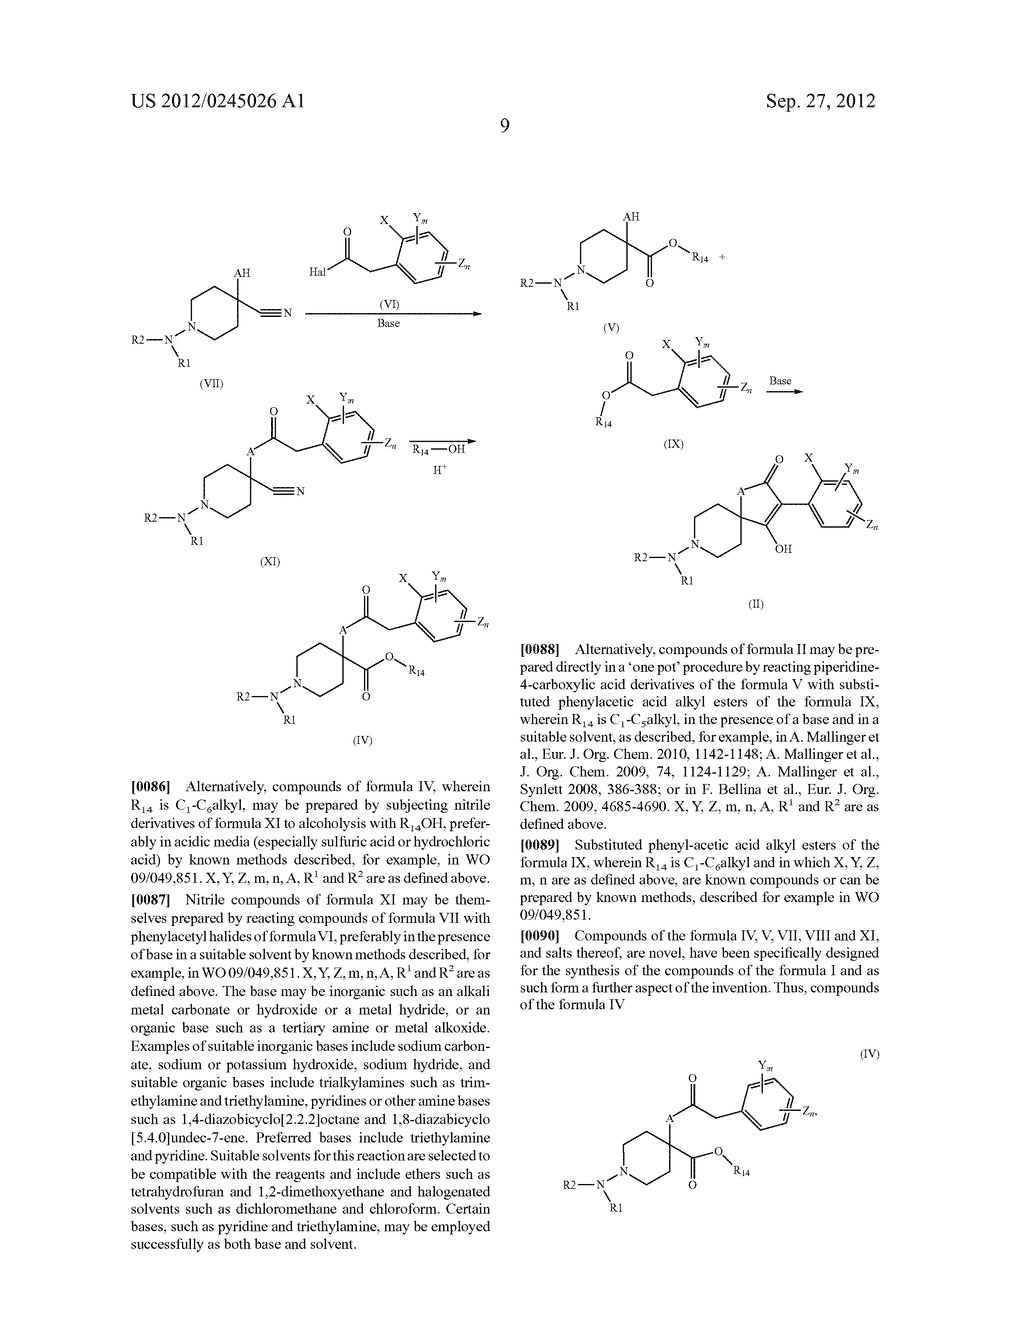 SPIRO FUSED 1-AMINO - PIPERDINE PYRROLIDINE DIONE DERIVATIVES WITH     PESTICIDAL ACTIVITY - diagram, schematic, and image 10